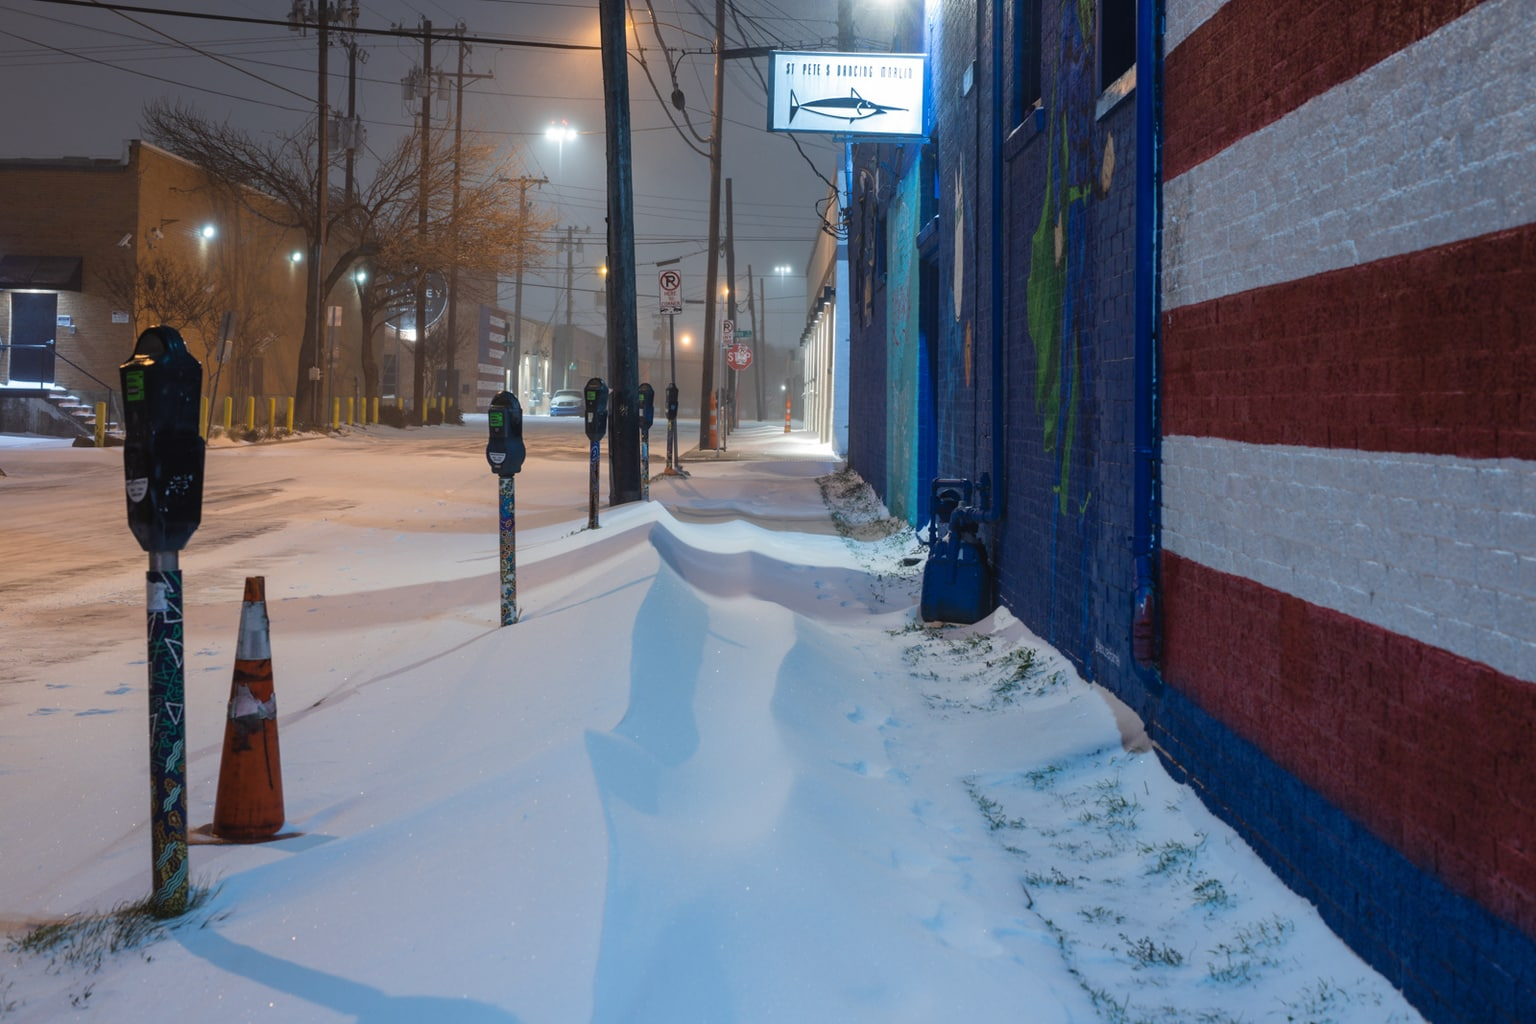 Snow piled up on the sidewalk in Deep Ellum